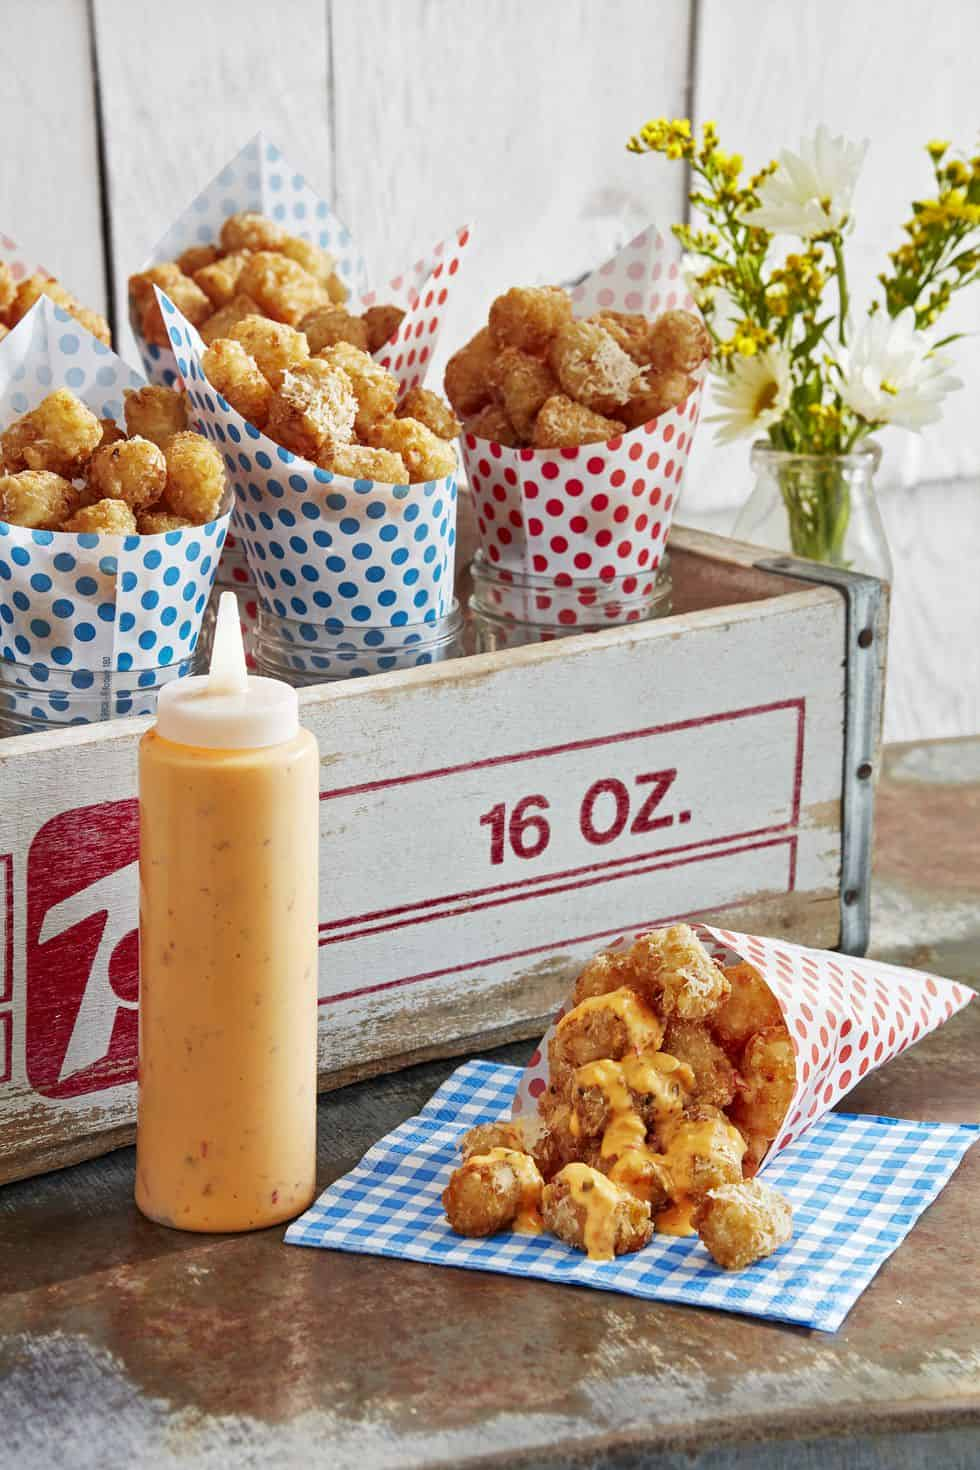 Parmesan tots with dipping sauce